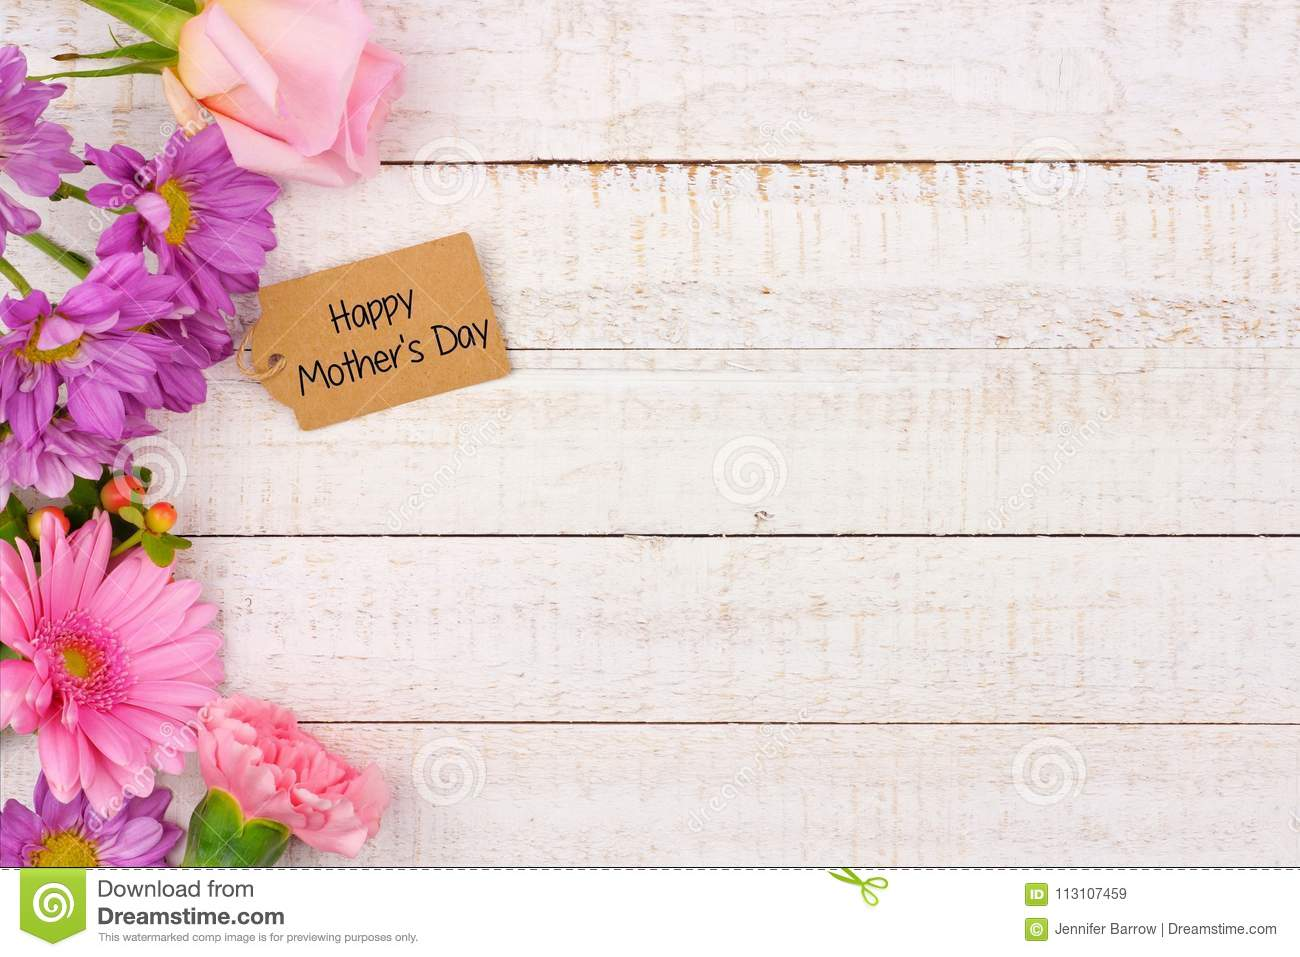 side border of flowers with mothers day gift tag against white wood